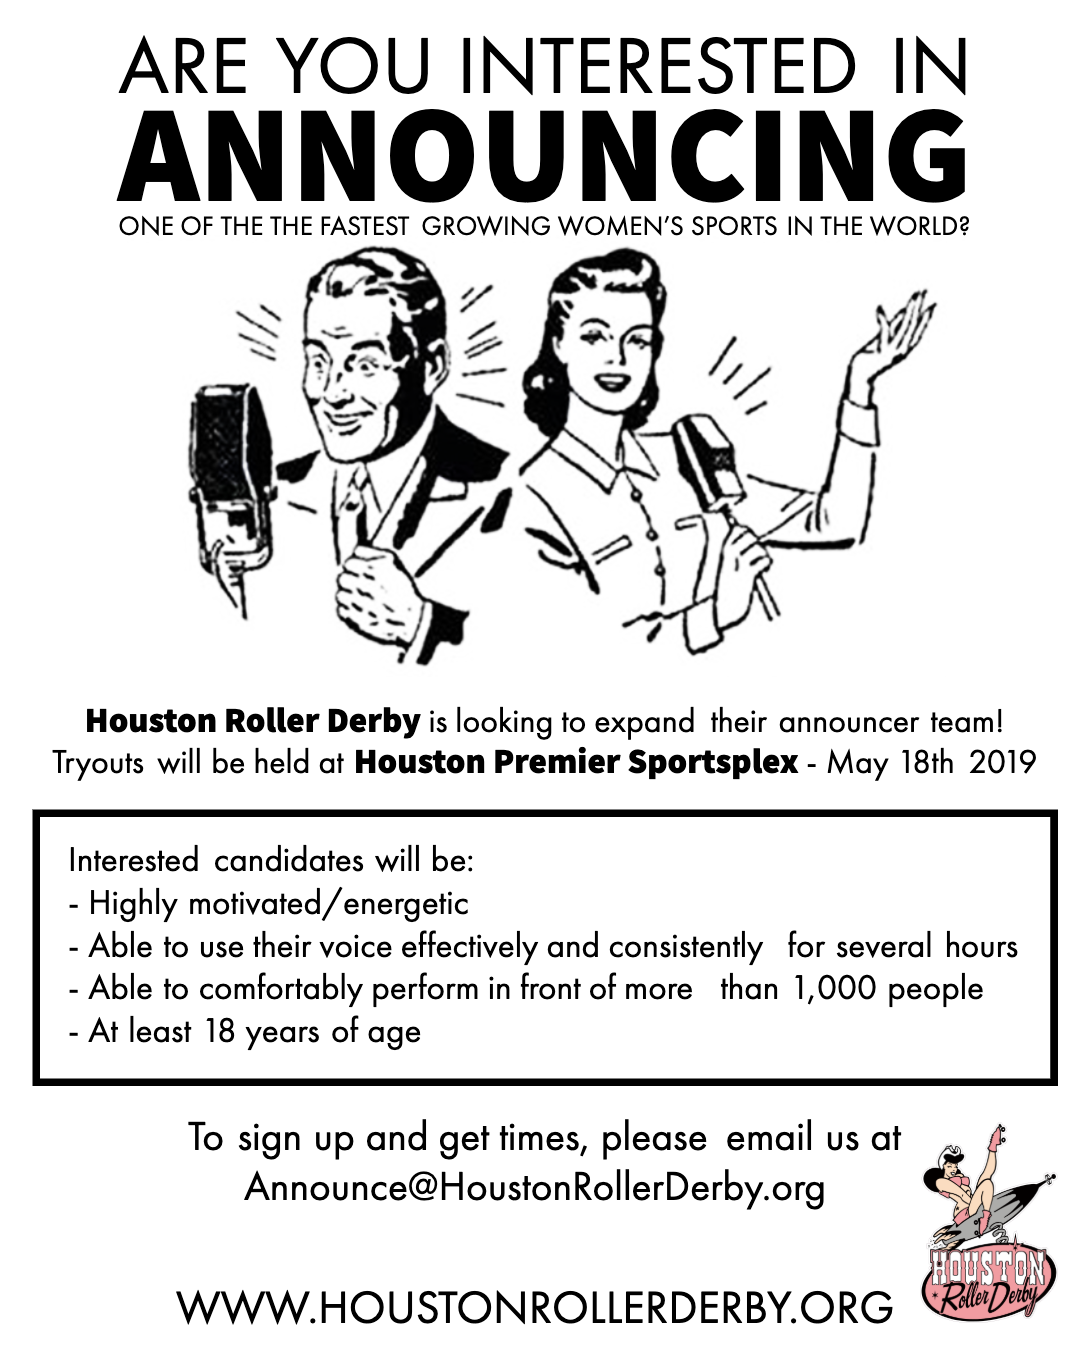 - Are YOU ready to be the next voice of Houston Roller Derby? We're looking for new lovely voices to join our announcer team and we'll be holding tryouts at The Day of Derby on May 18th!Come show us what you've got what it takes to be the next voice of HRD! No prior mic or derby experience needed!Email announce@houstonrollerderby.org to register.